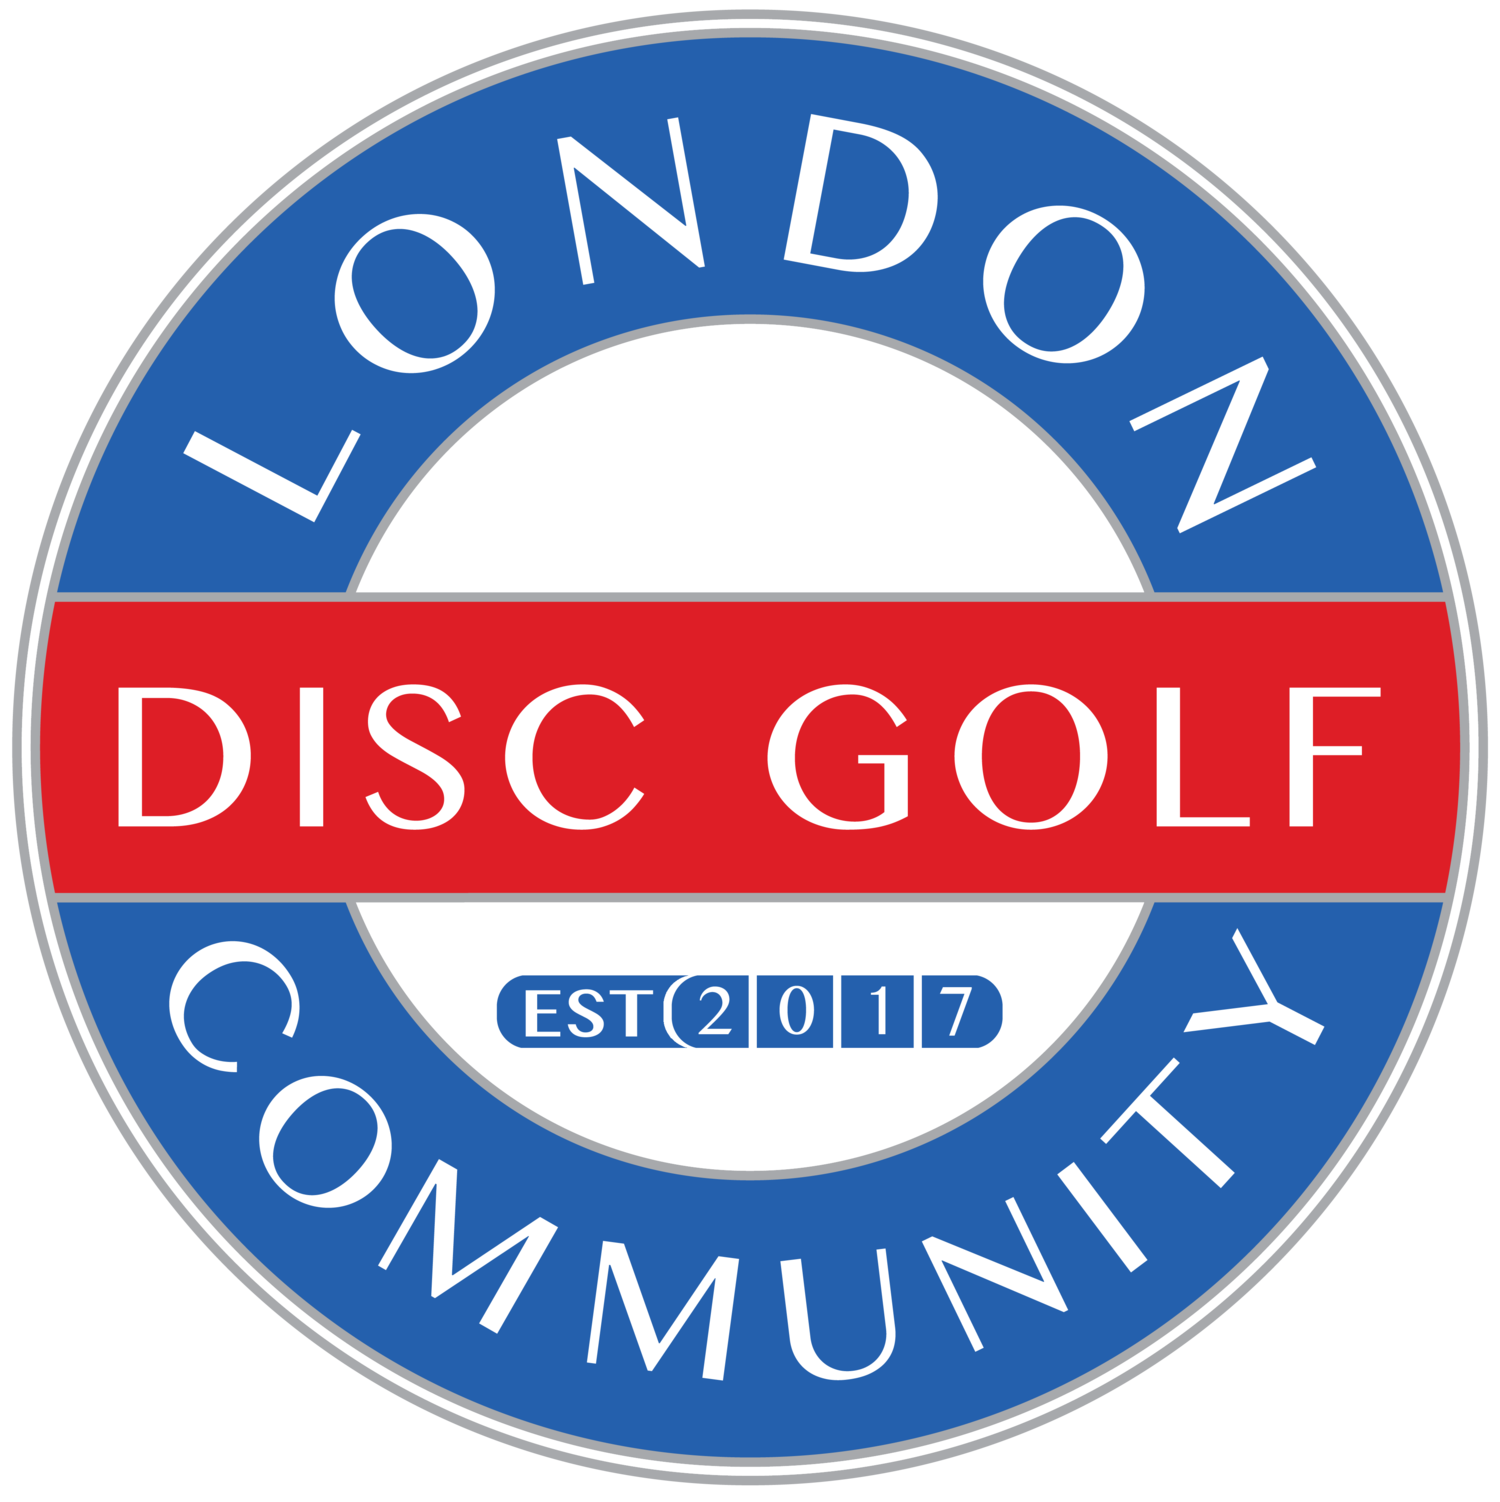 London Disc Golf Community